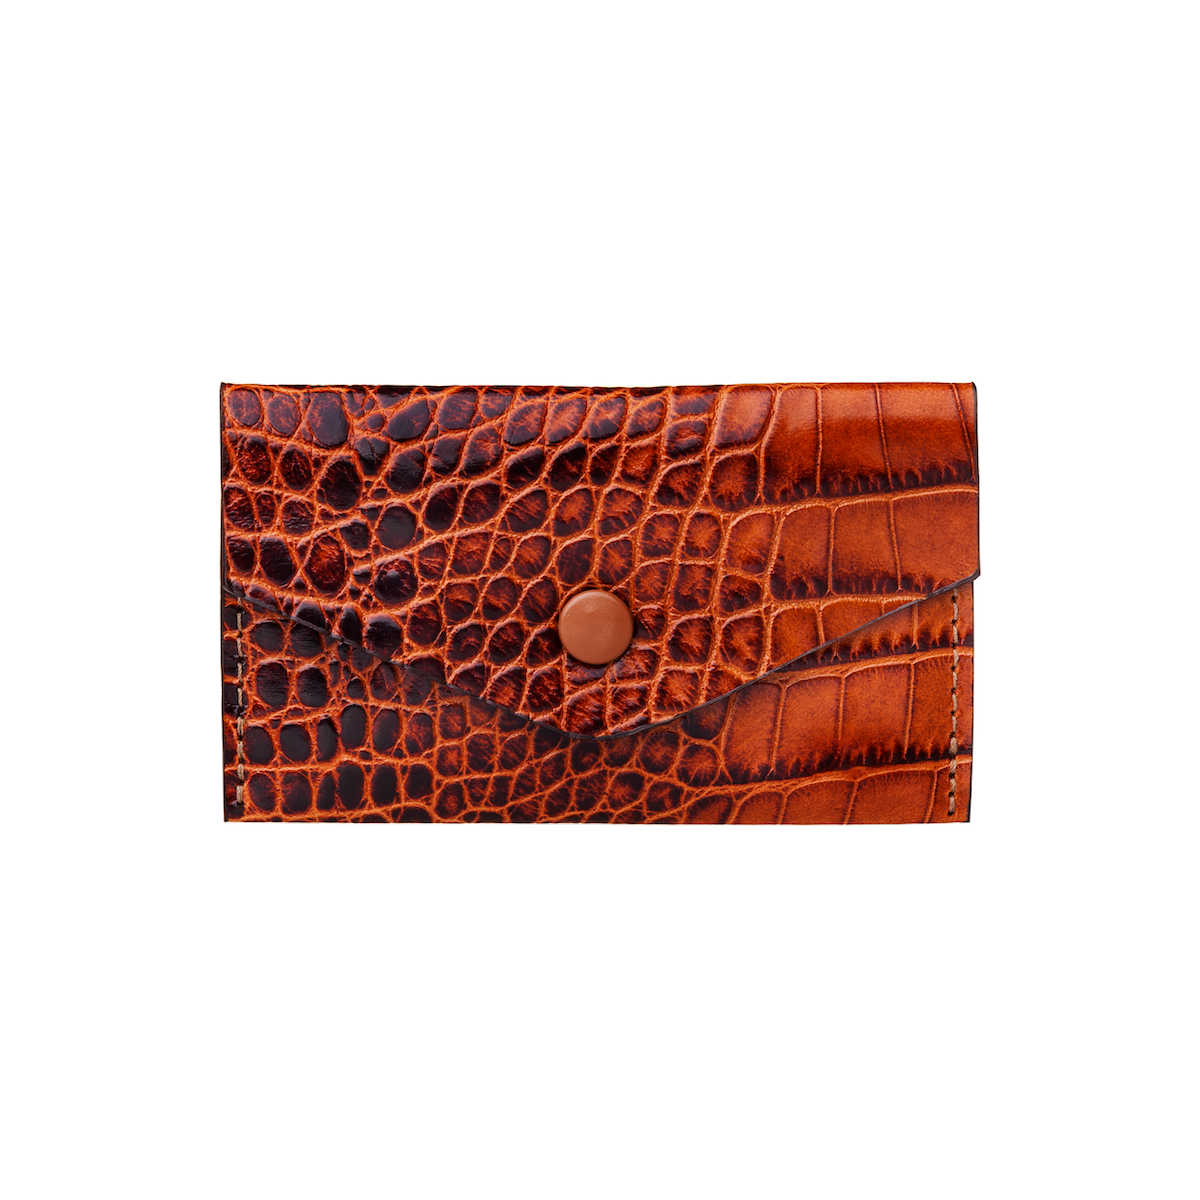 Business Card Holder, Croco Leather Tan/Brown, MAISON JMK-VONMEL Luxe Gifts